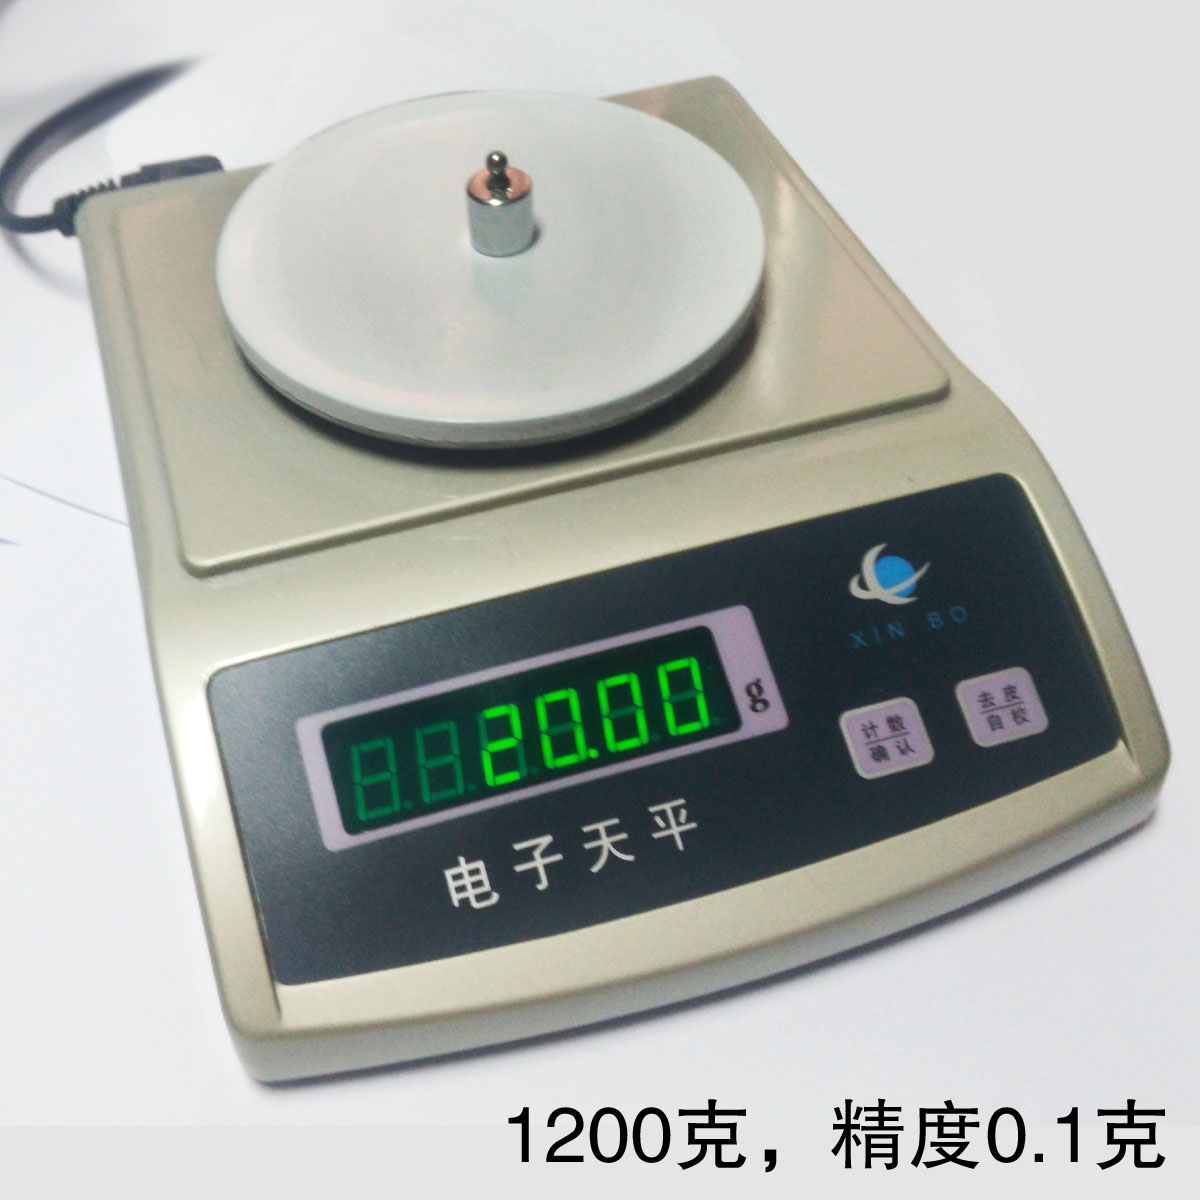 G 0.1 grams of high precision electronic balance electronic scales electronic scales precision can be said 1200g gram scales electronic scales jewelry scales